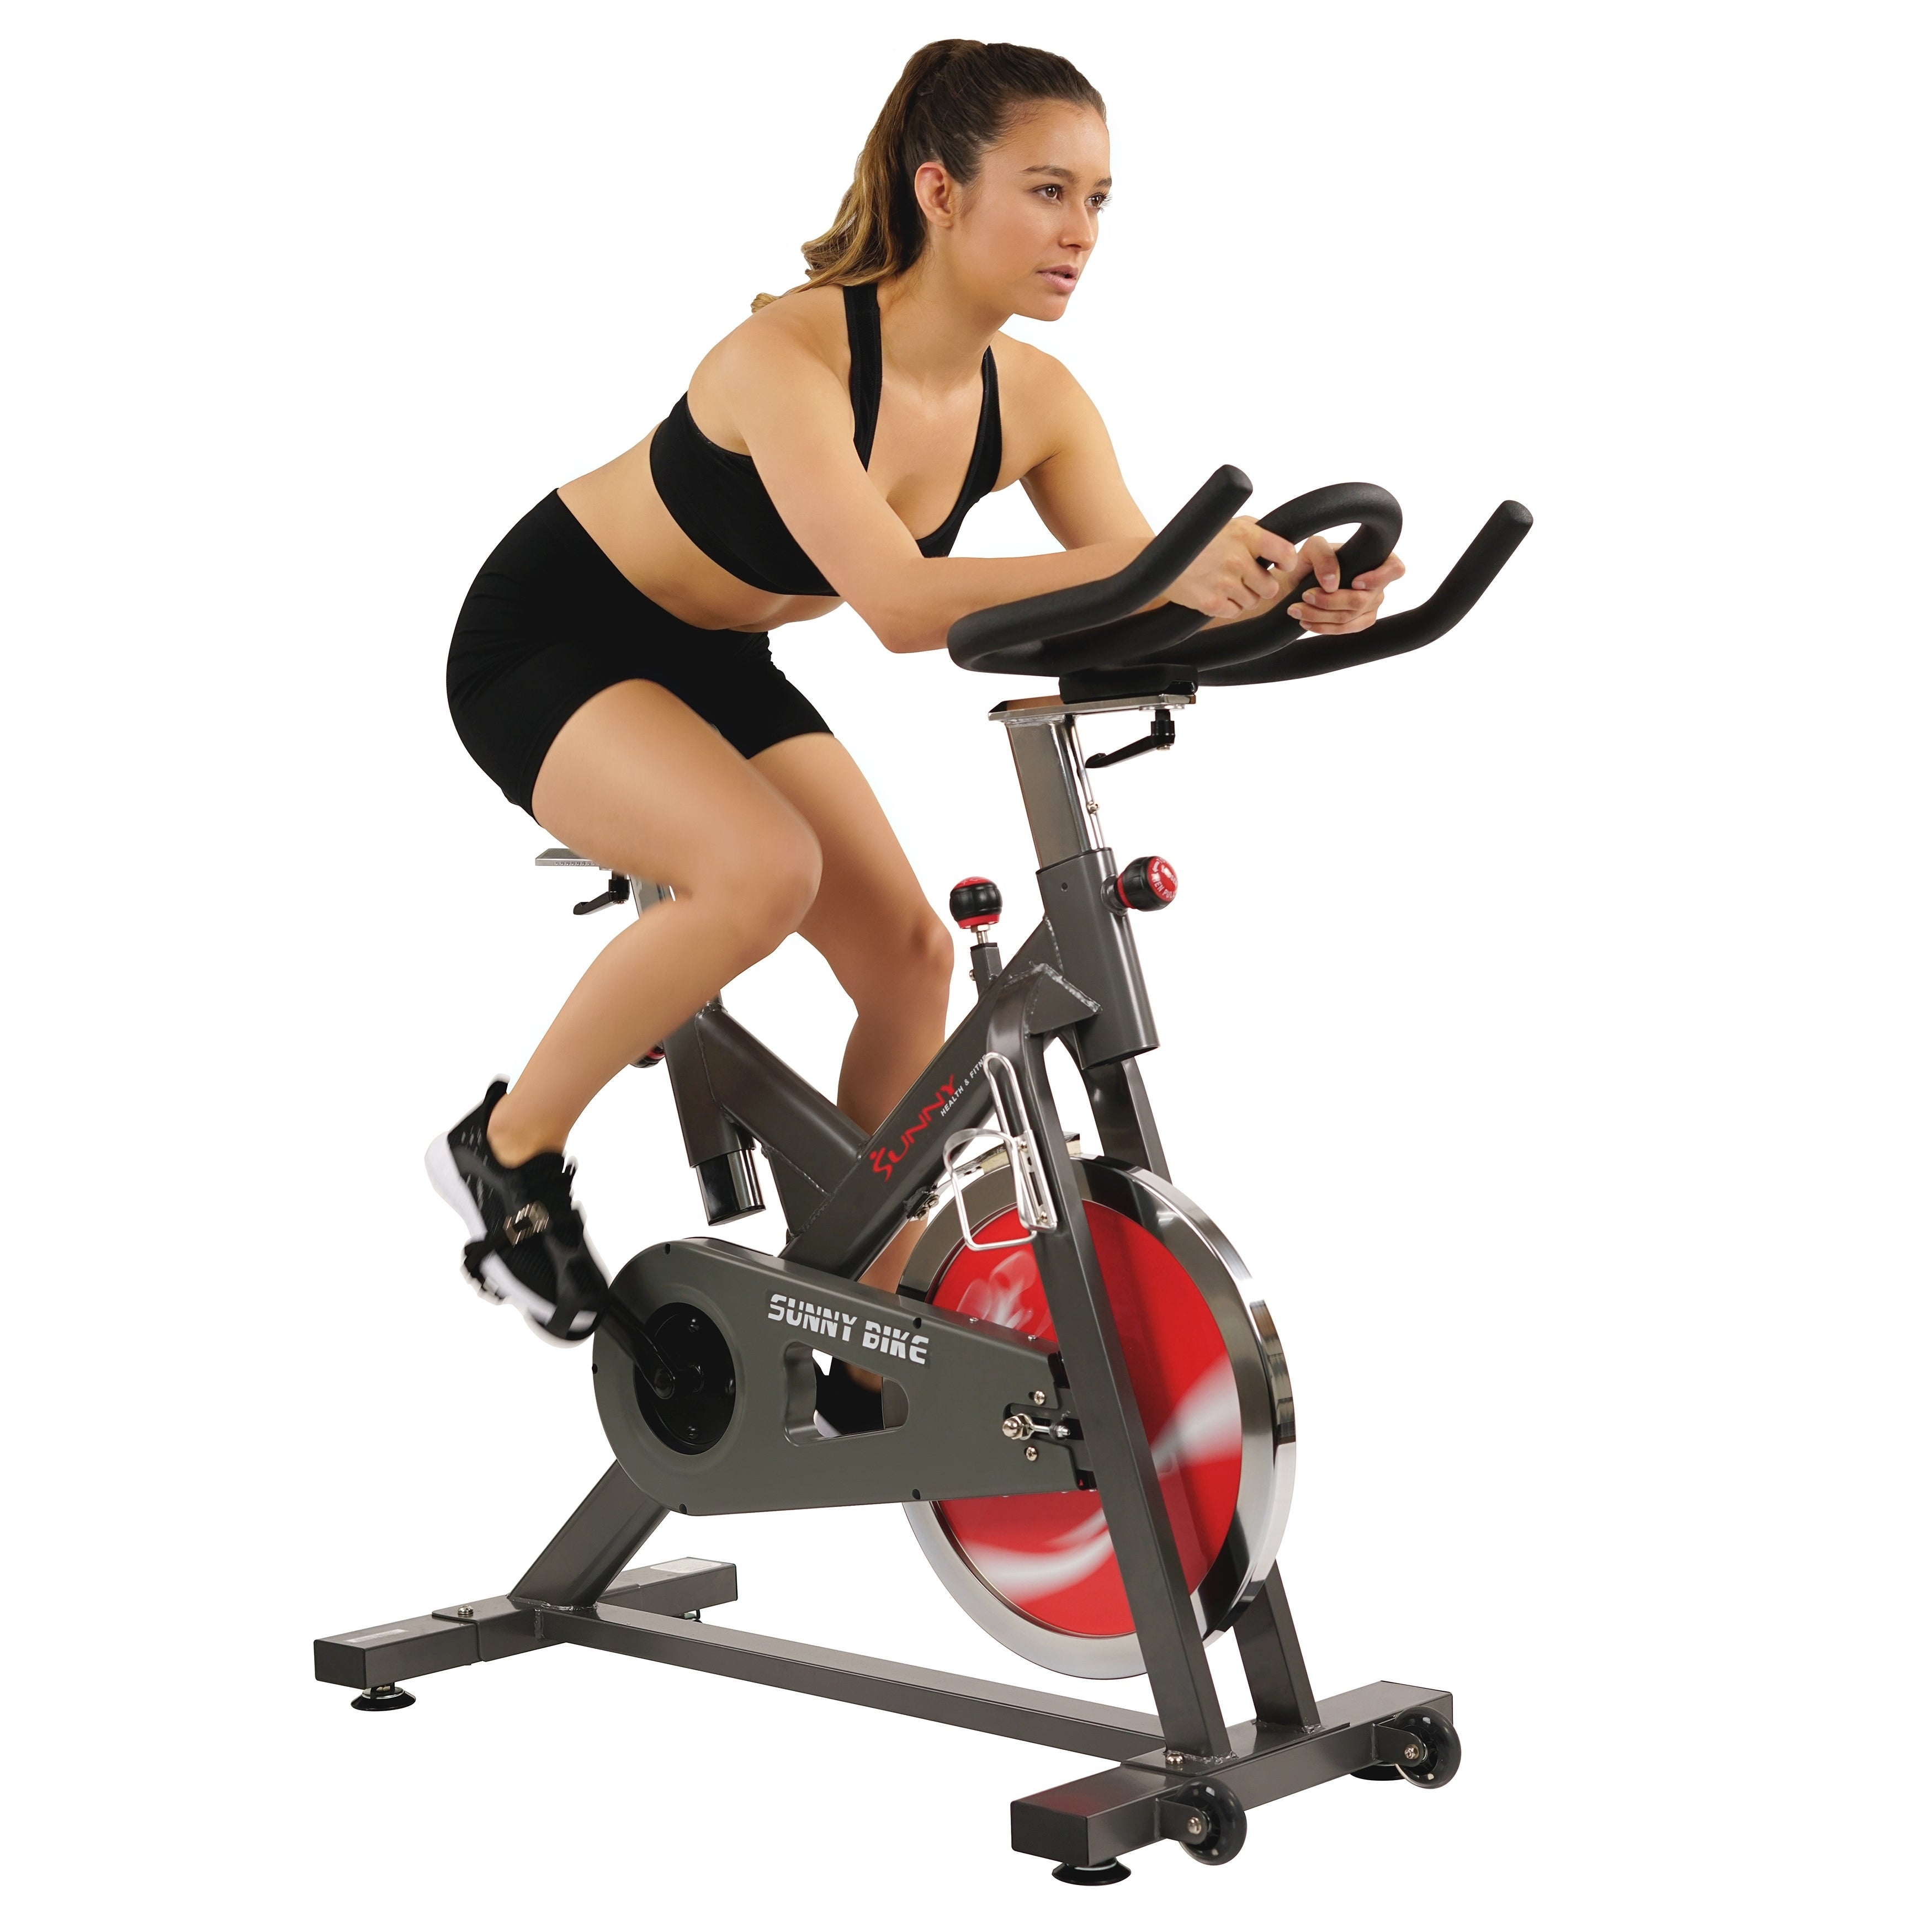 Sunny Health & Fitness Belt Drive Indoor Cycling Bike - 44 lb Flywheel,  Adjustable and Portable Exercise Bicycle - Black